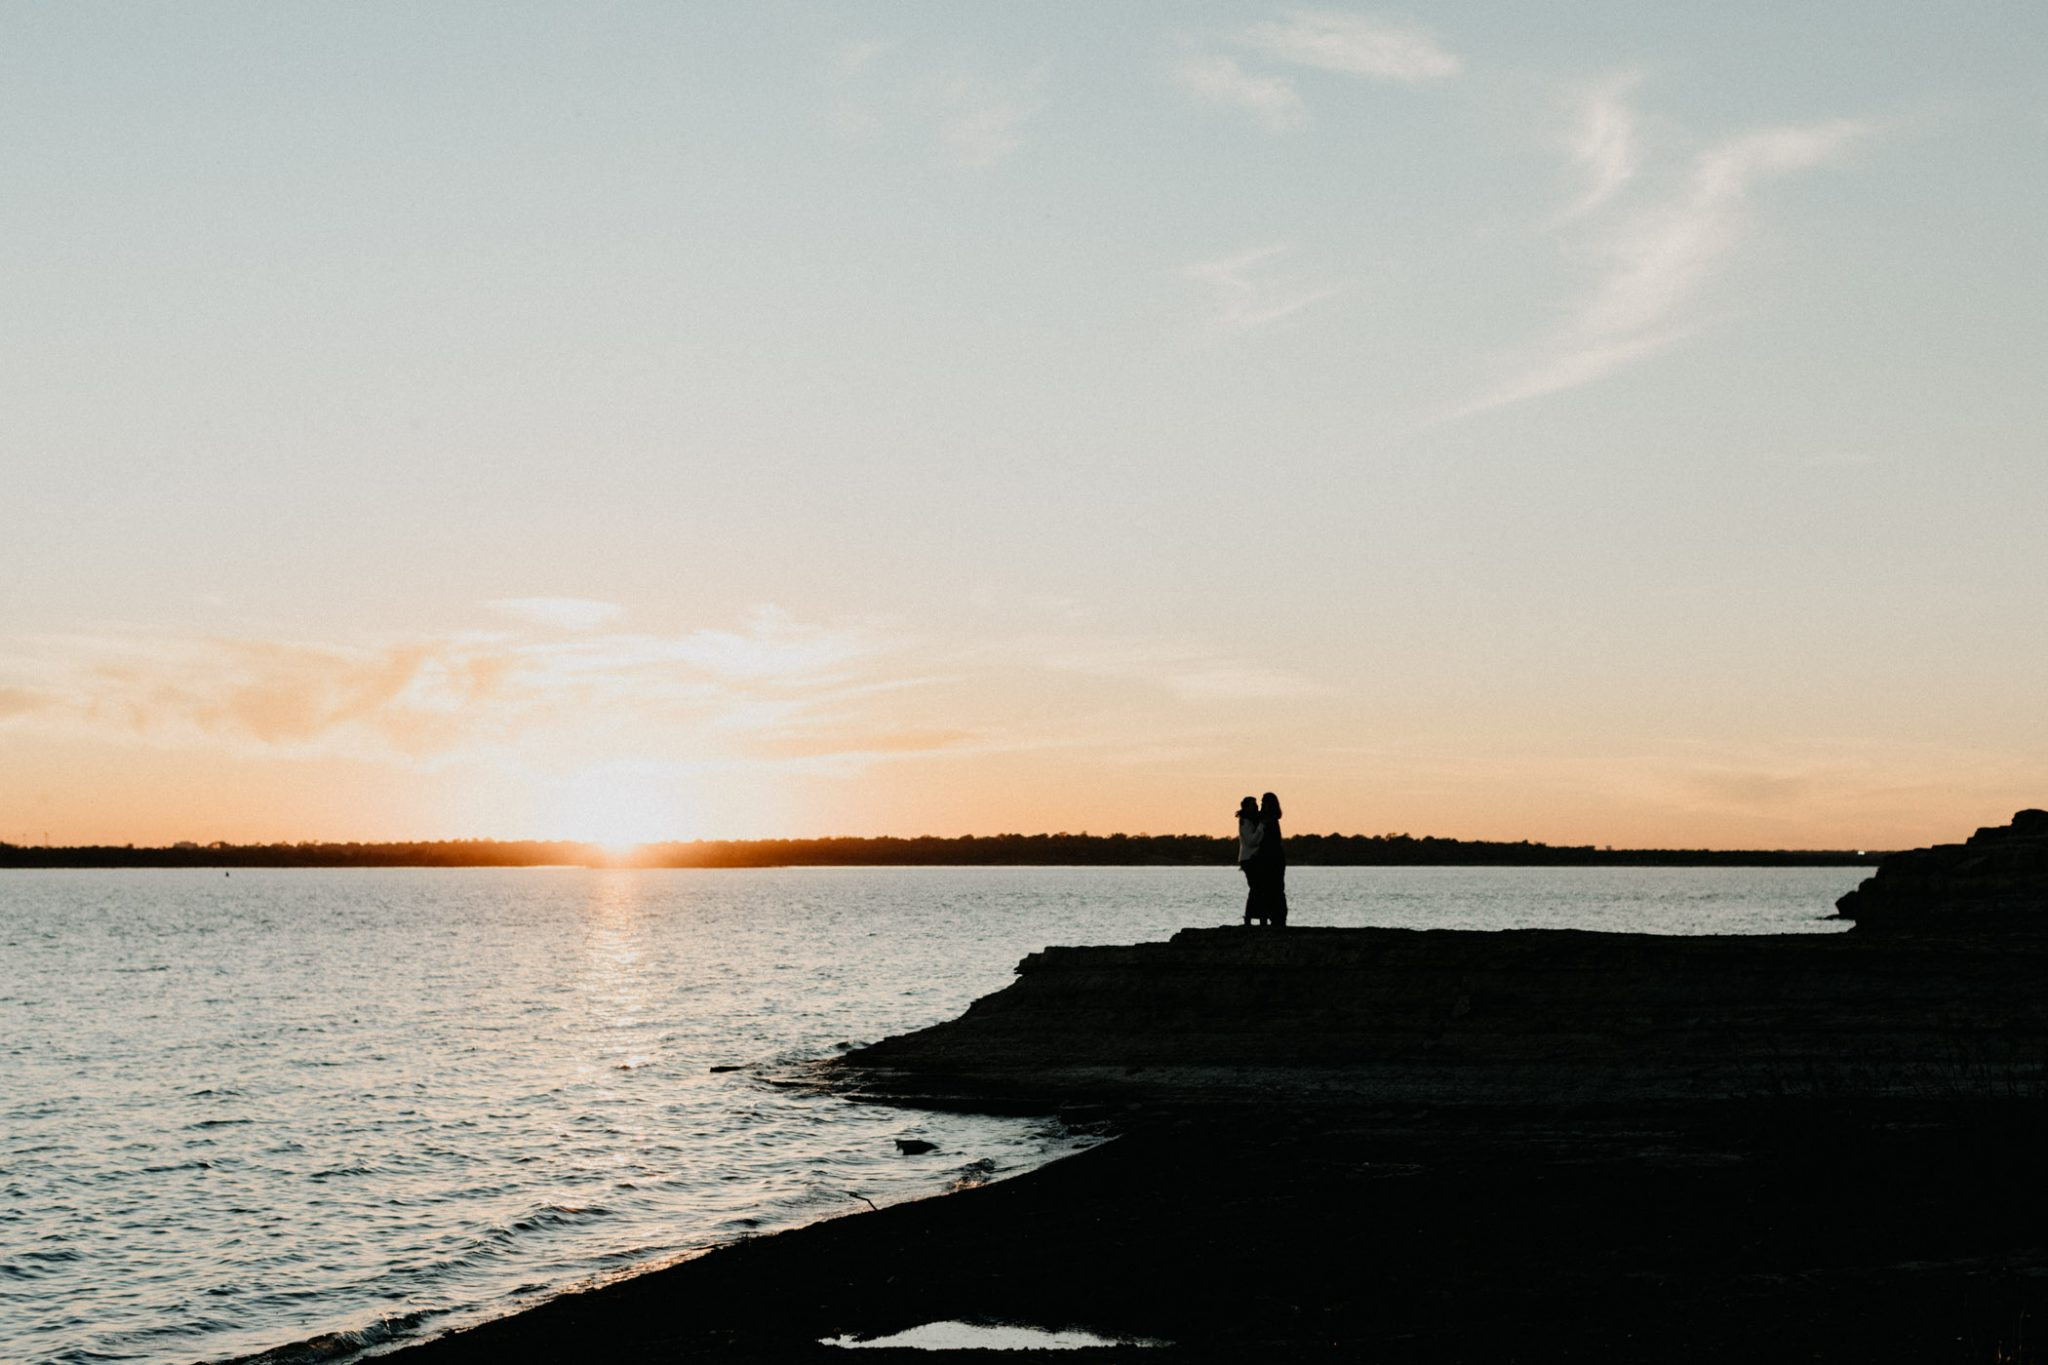 wide angle photograph of couple standing next to the water at sunset